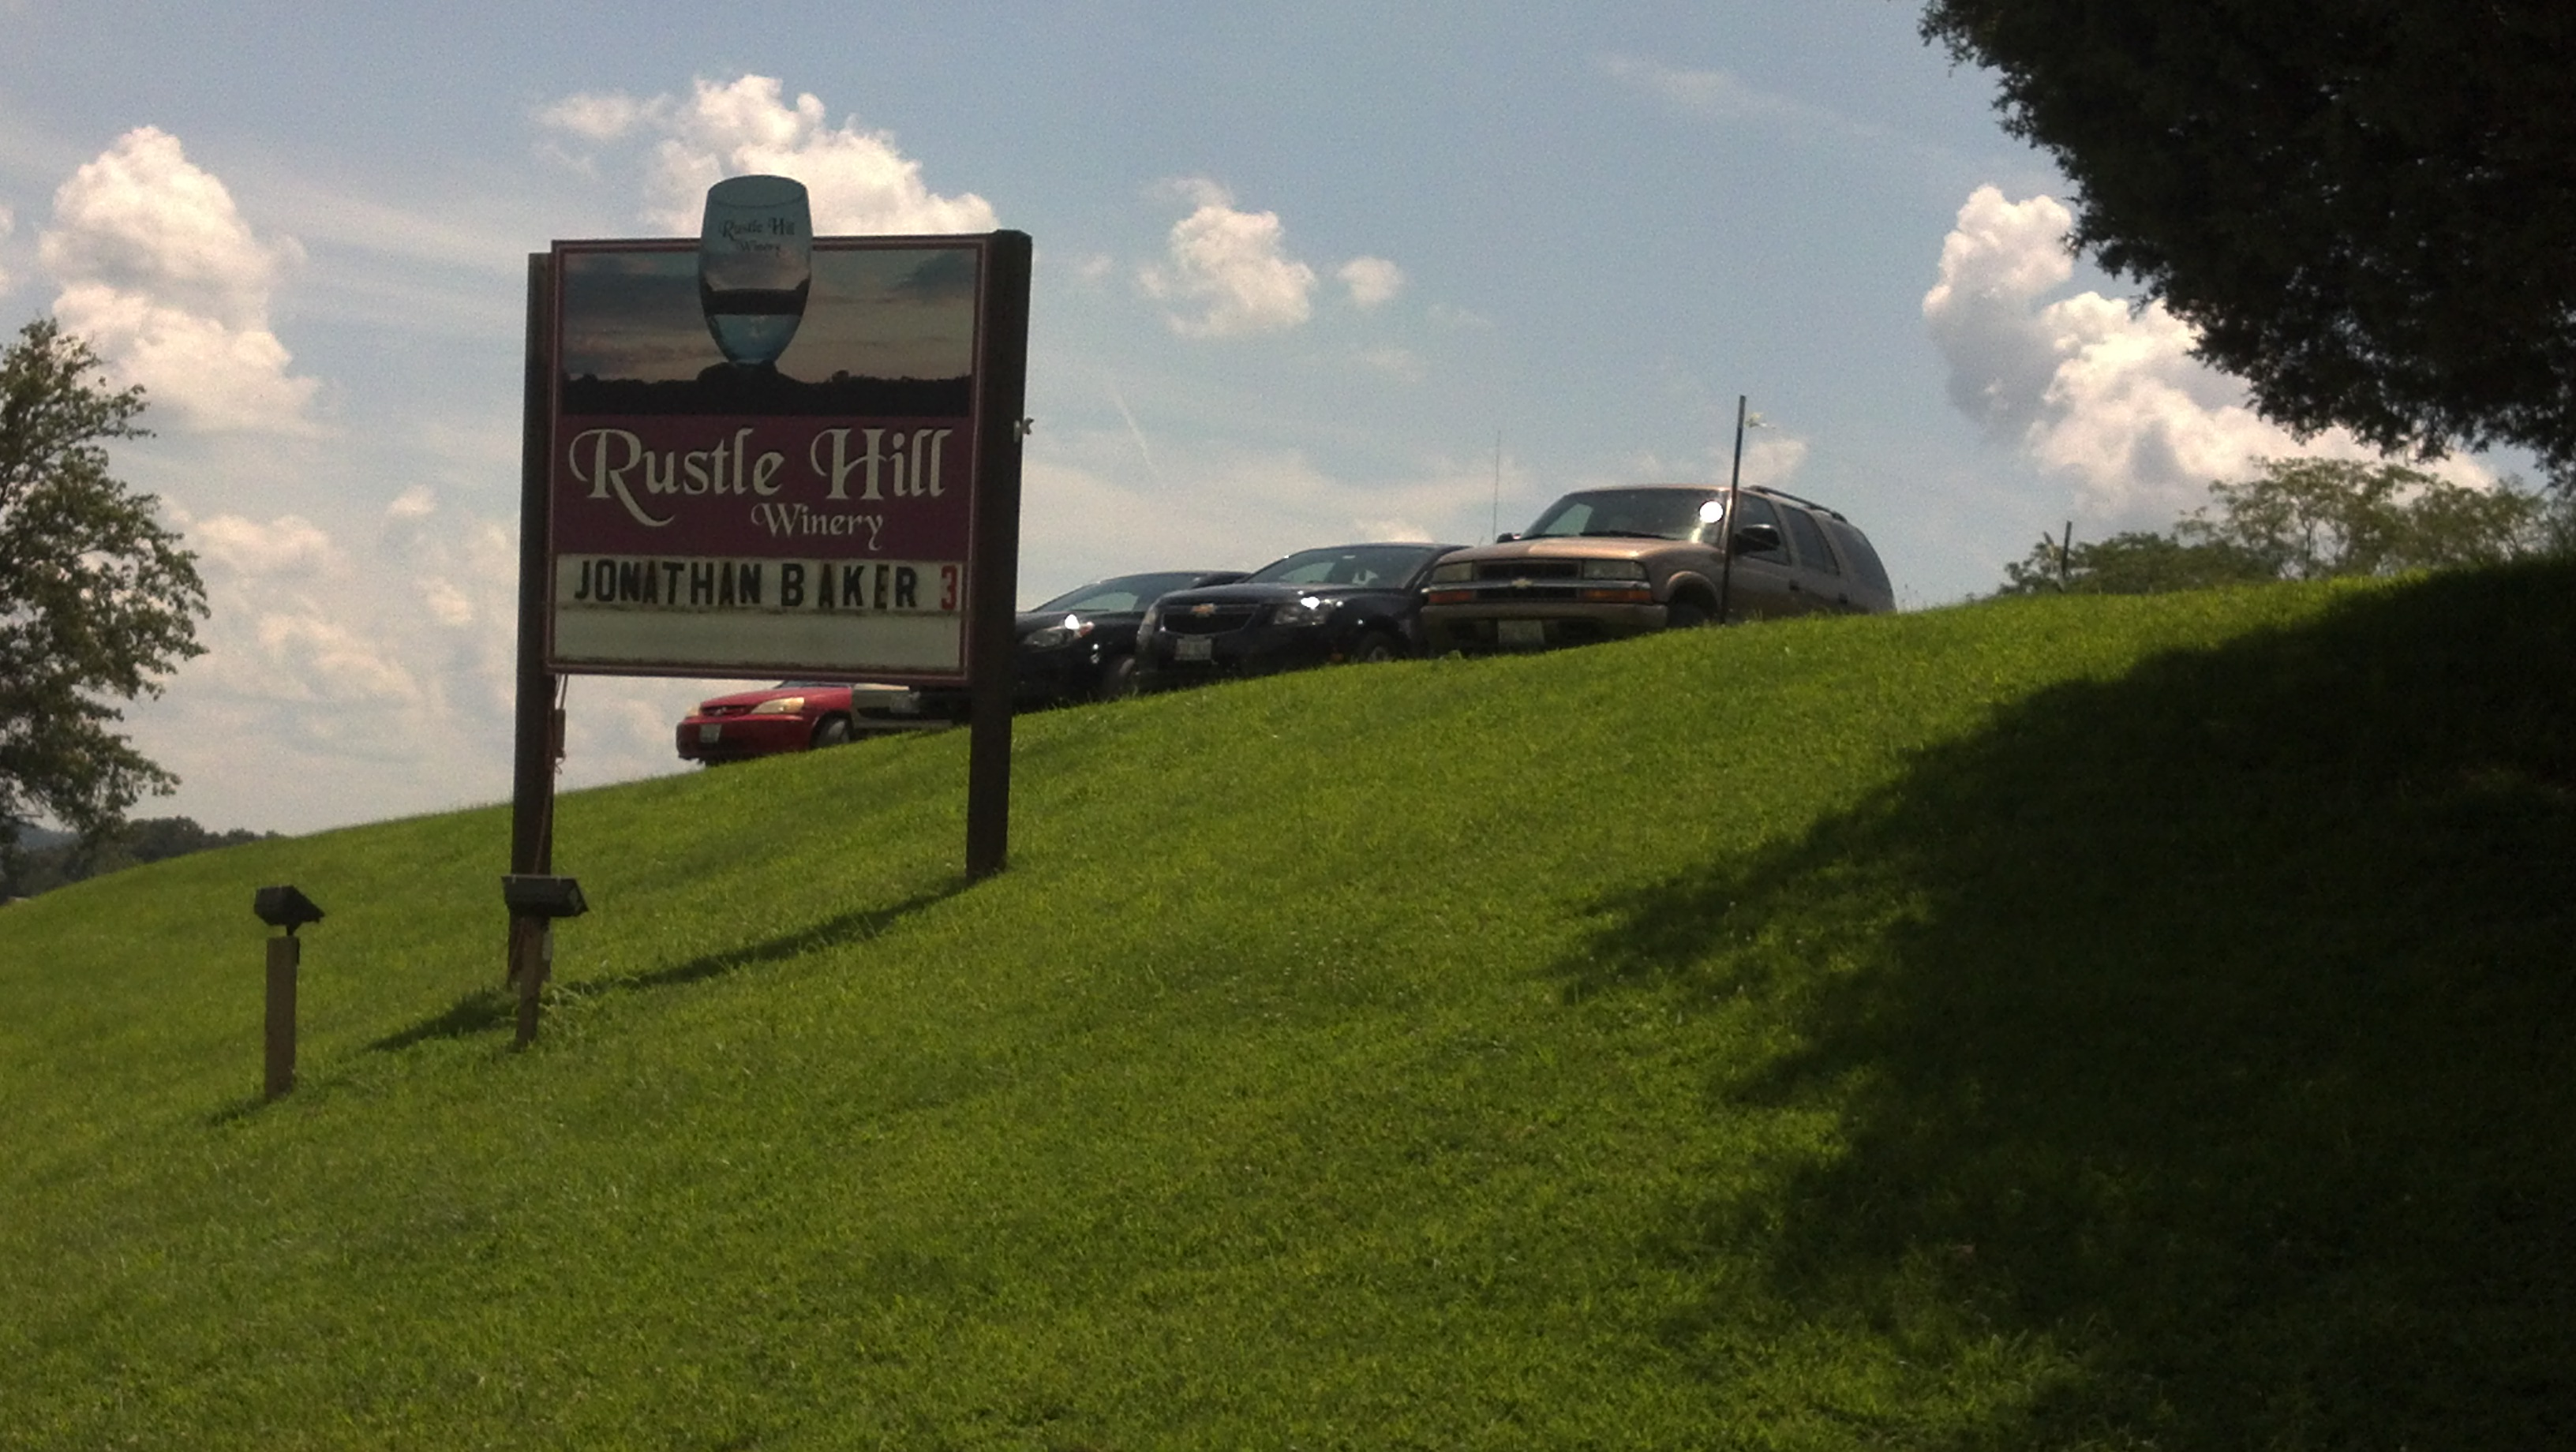 Rustle Hill Winery